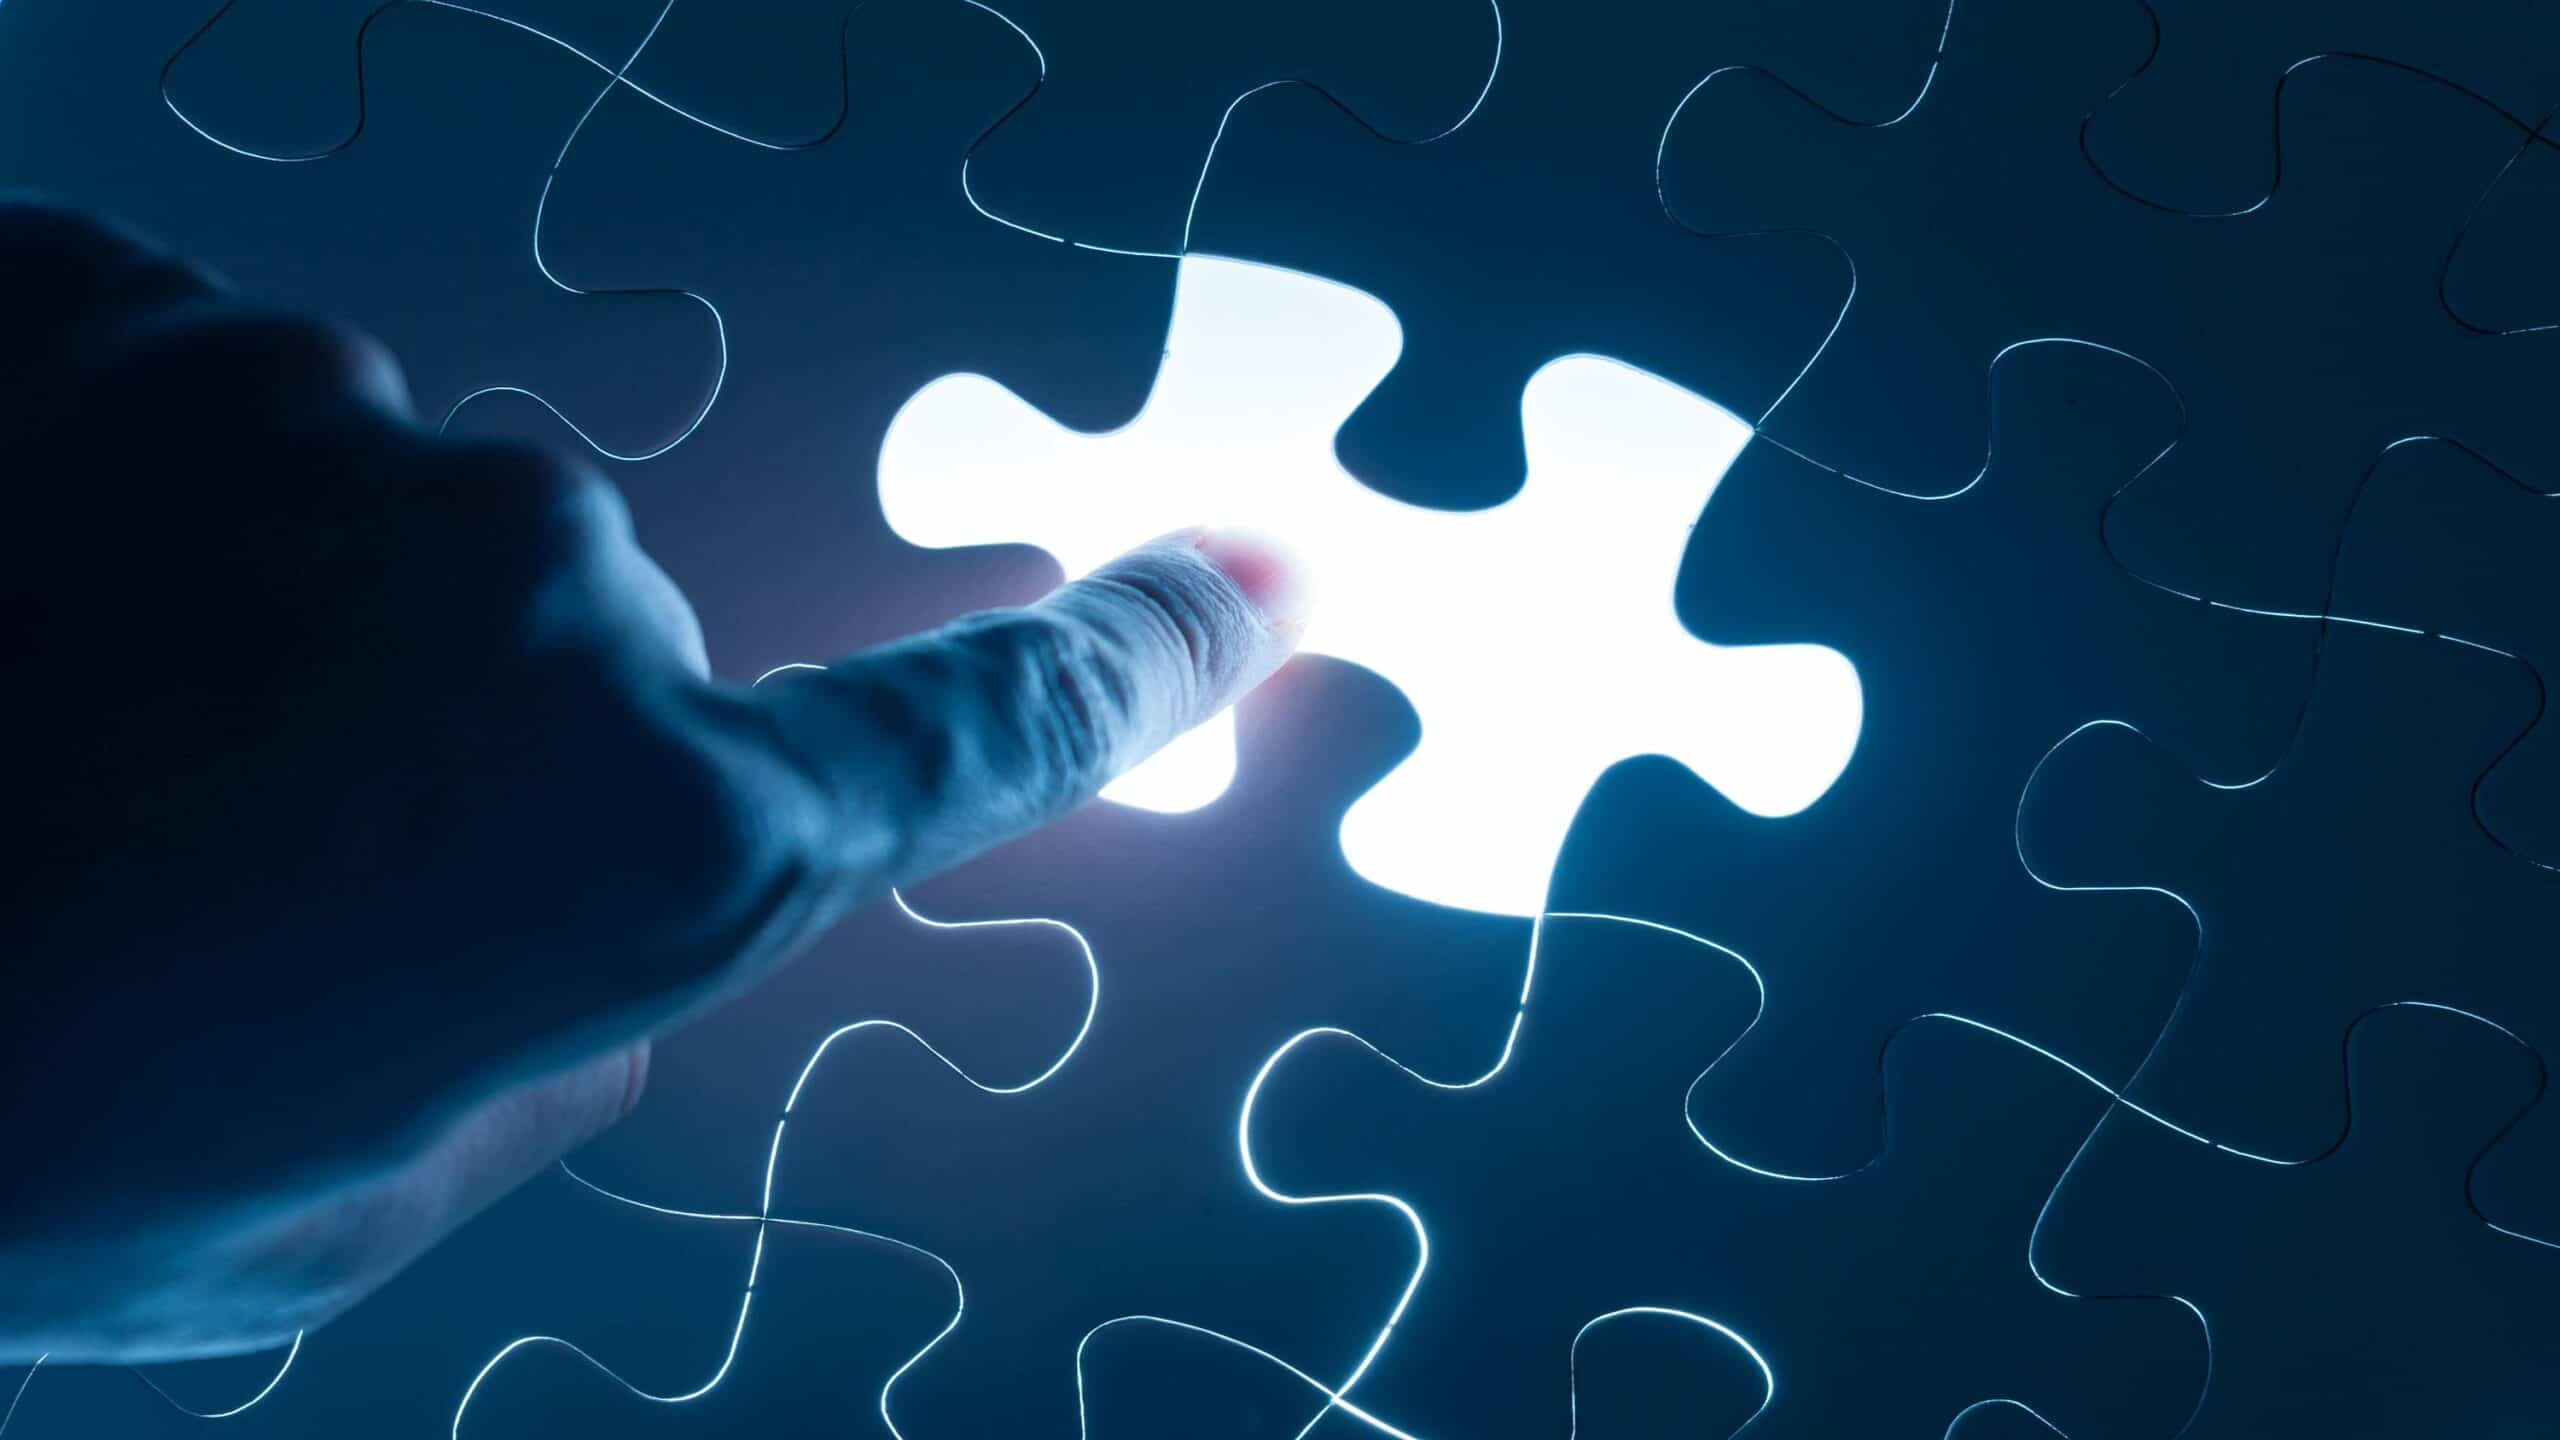 missing piece in puzzle alluring to the missing piece for one's complete life